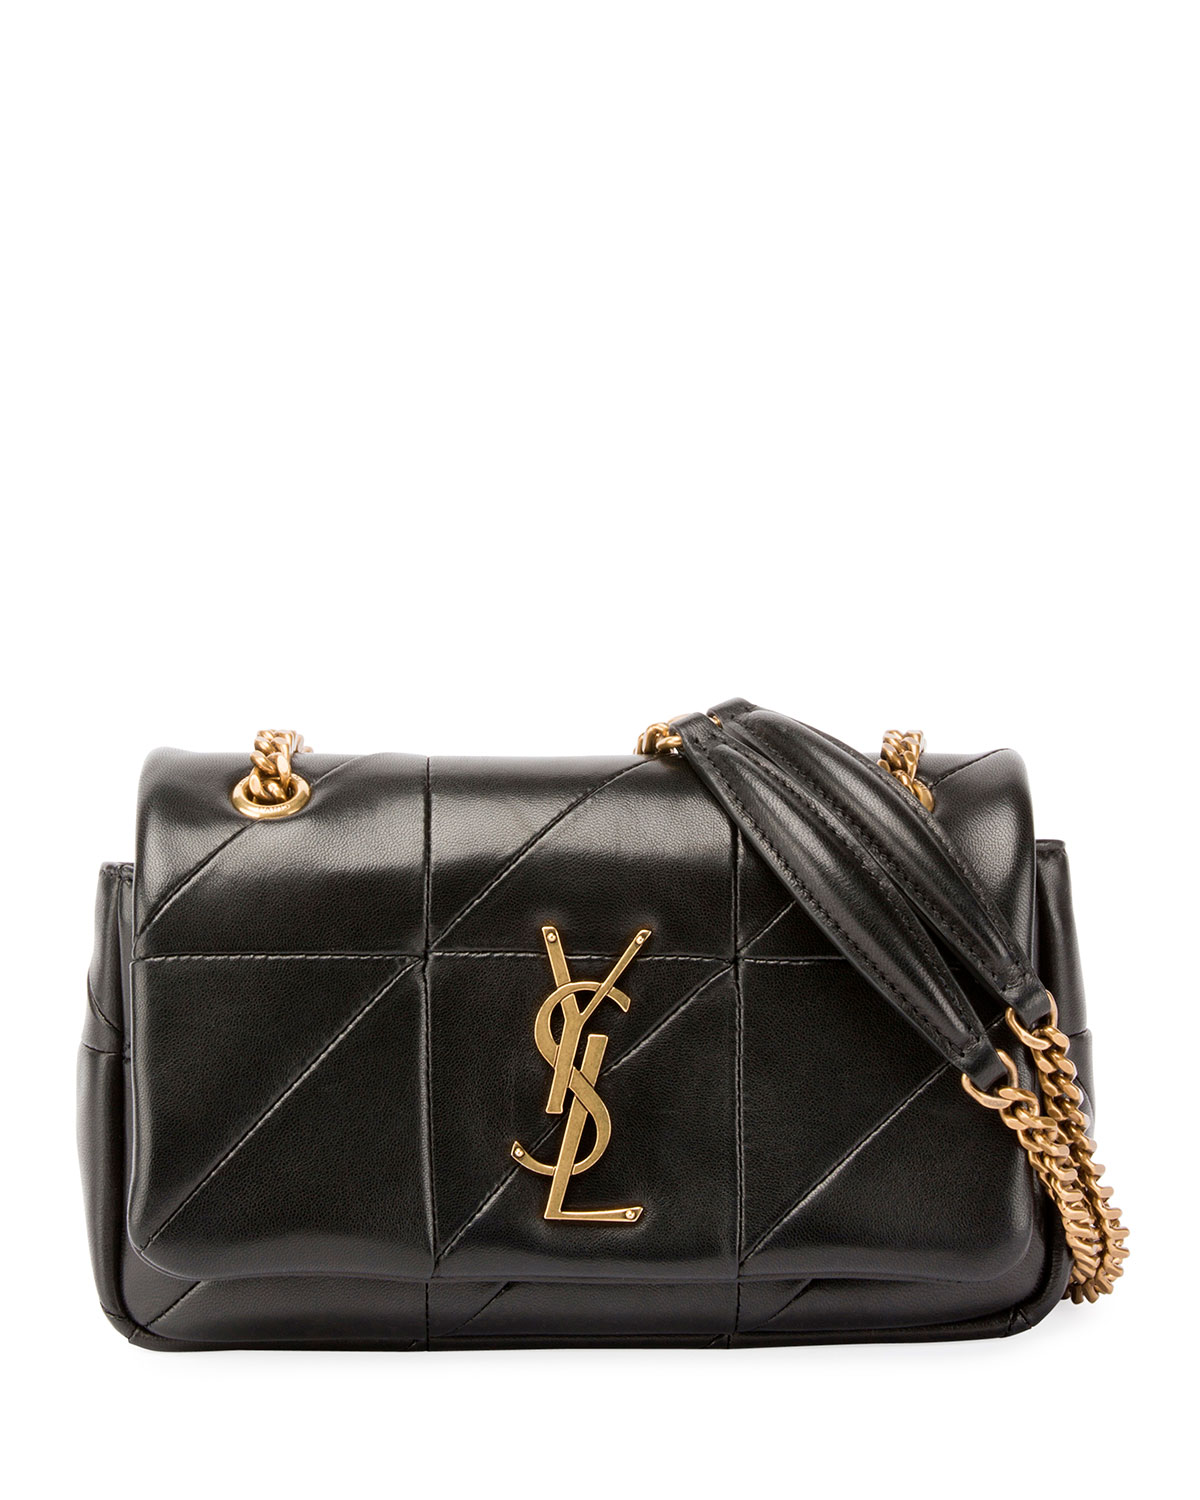 f8a342251a83 Saint LaurentJamie Monogram YSL Small Diamond-Quilted Chain Shoulder Bag.   1